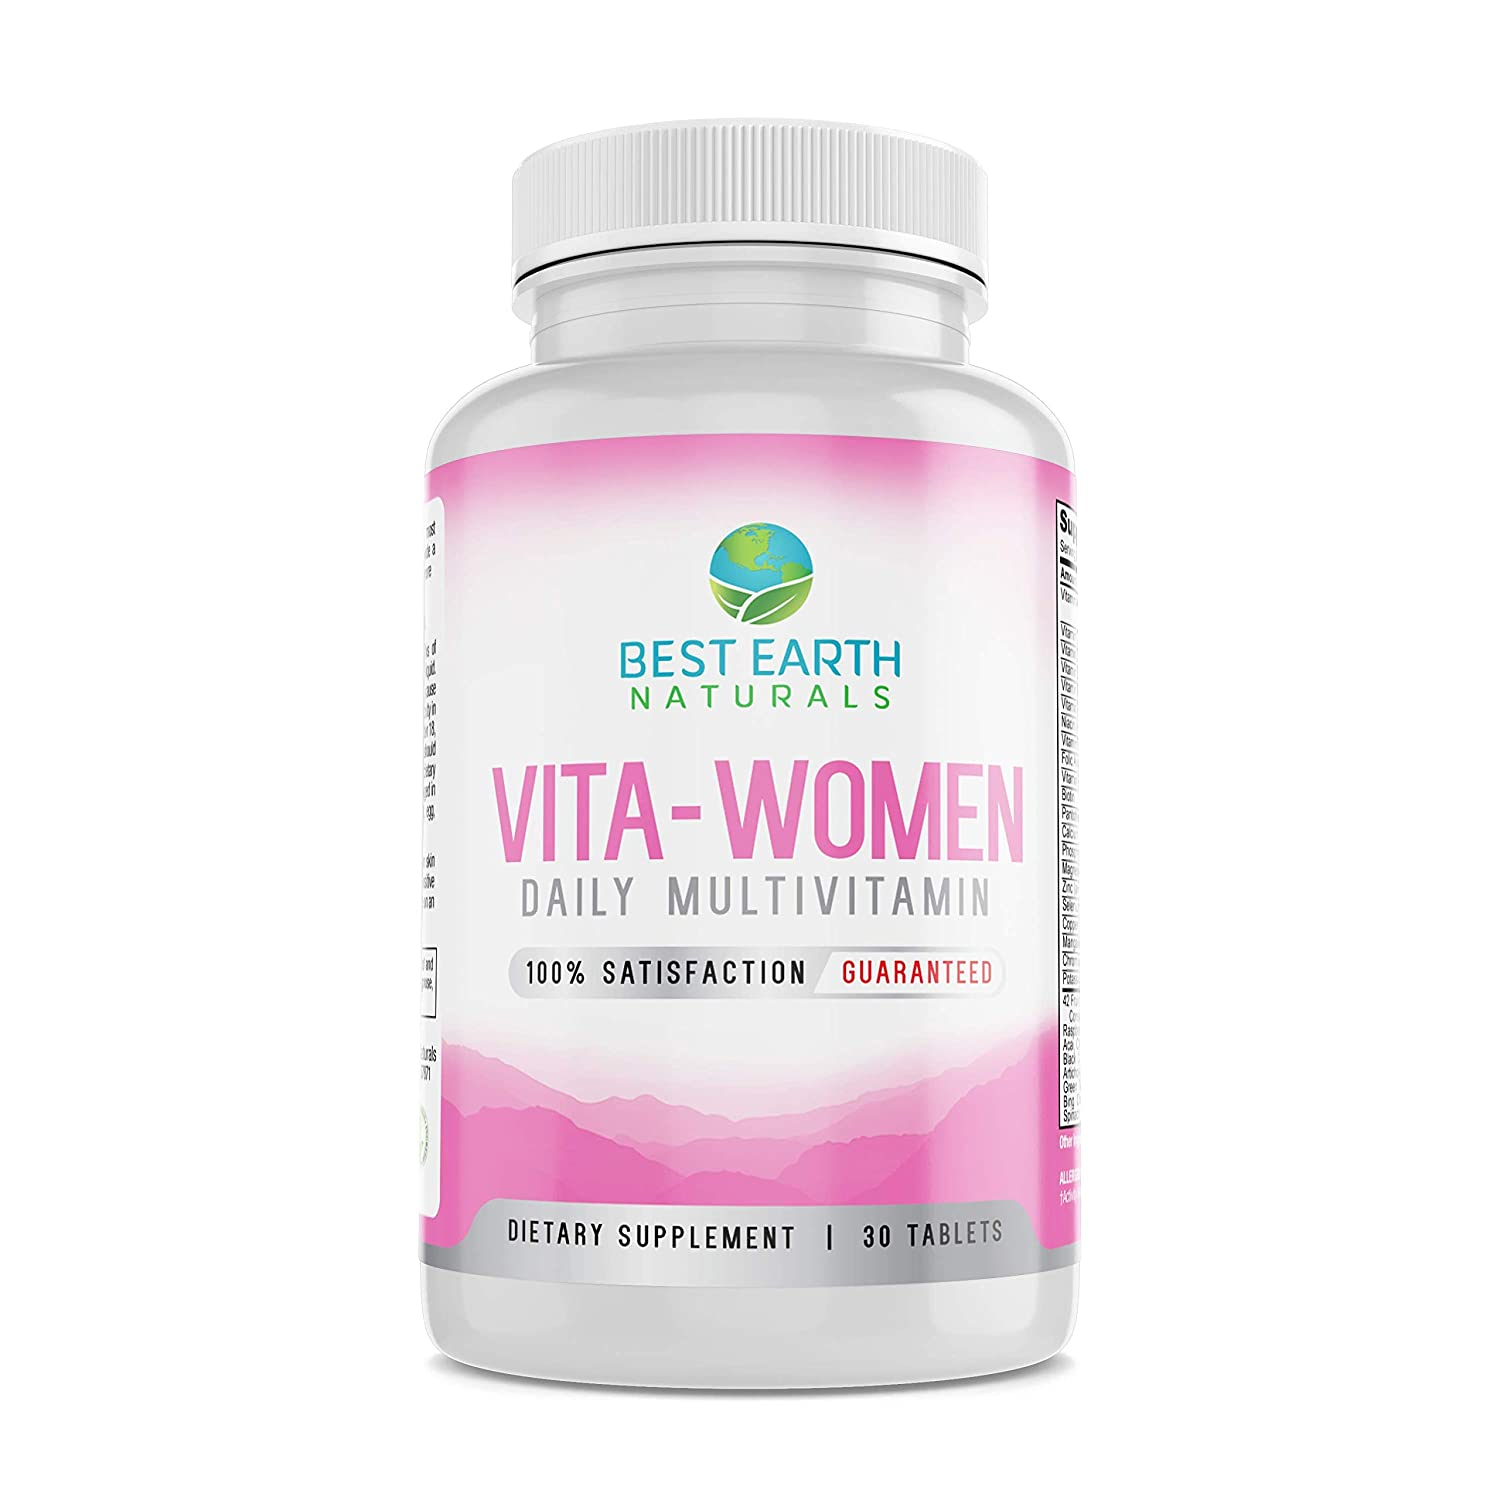 Vita Women Multivitamin Daily Once A Day Multivitamin and Mineral Supplement for Women Rich in Vitamins and Minerals, Antioxidants, Biotin, Zinc, Calcium, Potassium, Enzymes and More